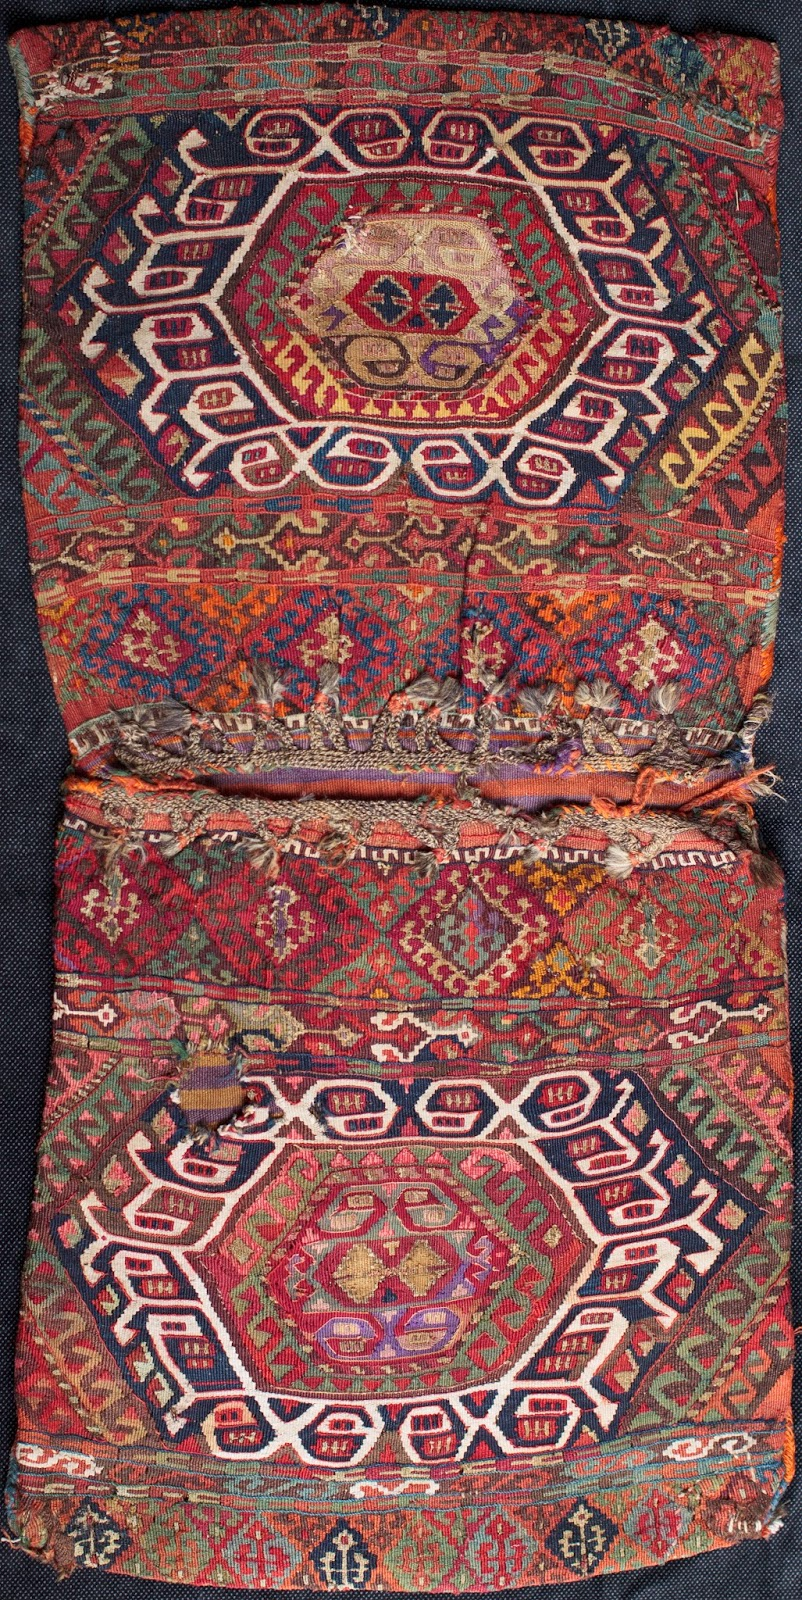 Rugs And Kilims Are The Master Elements Of Bohemian Style: Anatolian Kilim Rugs, Antiques And Tribal Textiles